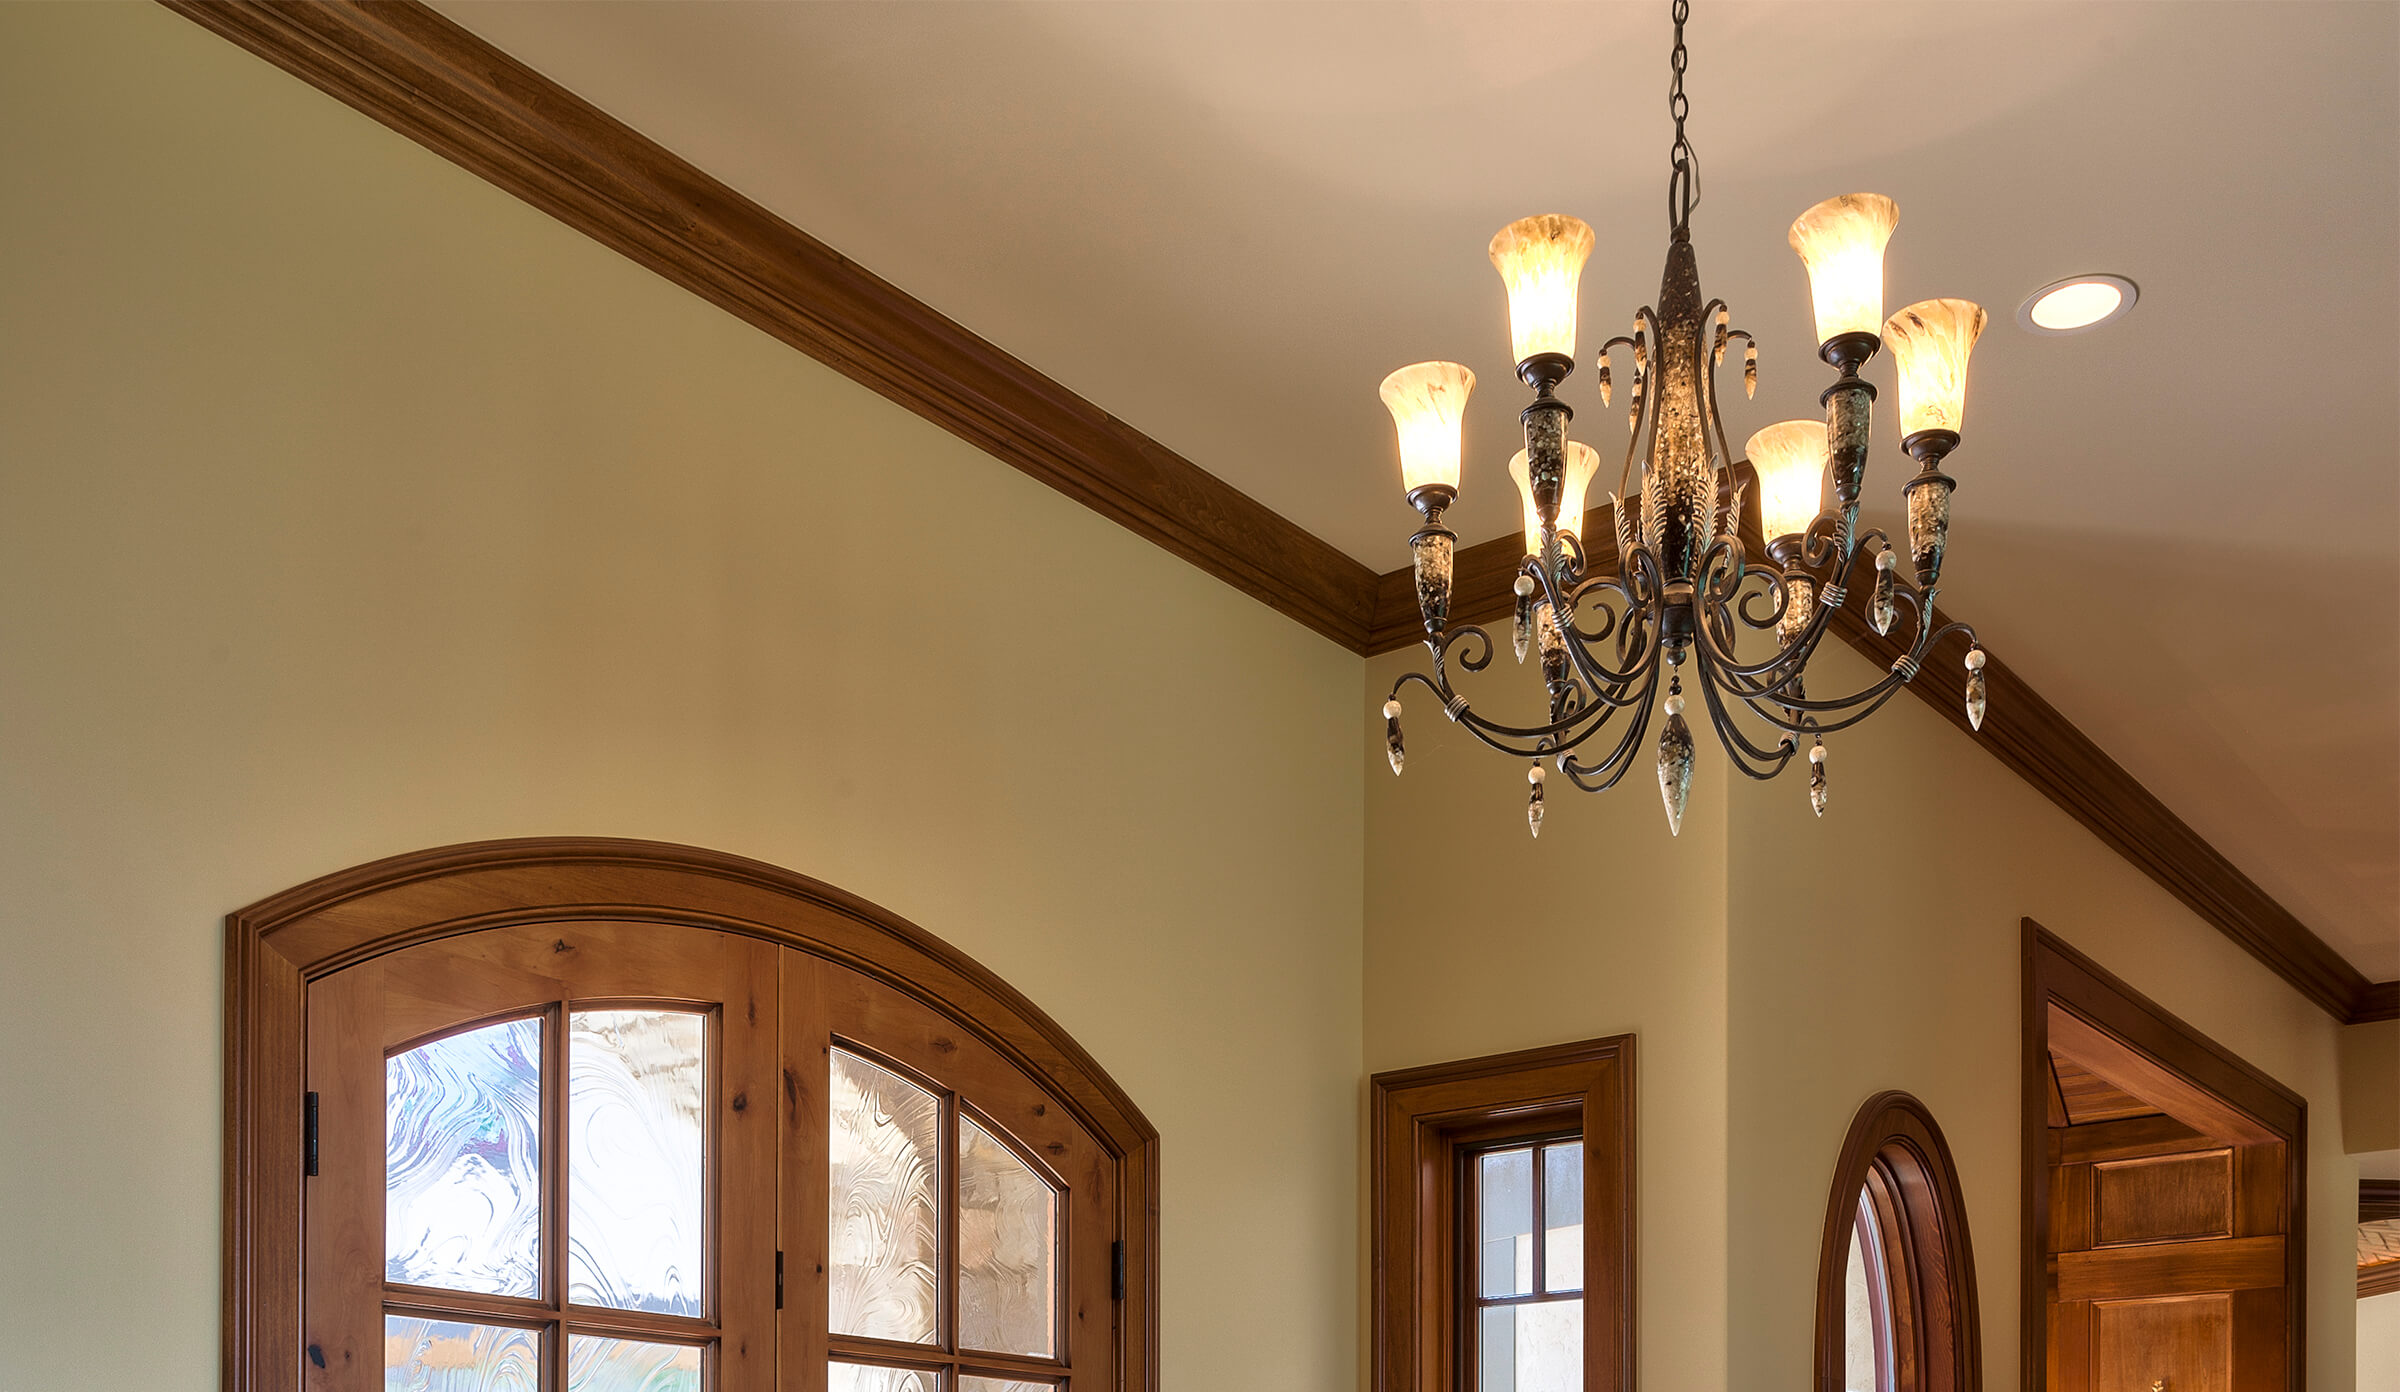 Wood Mouldings Manufactured by Sun Mountain